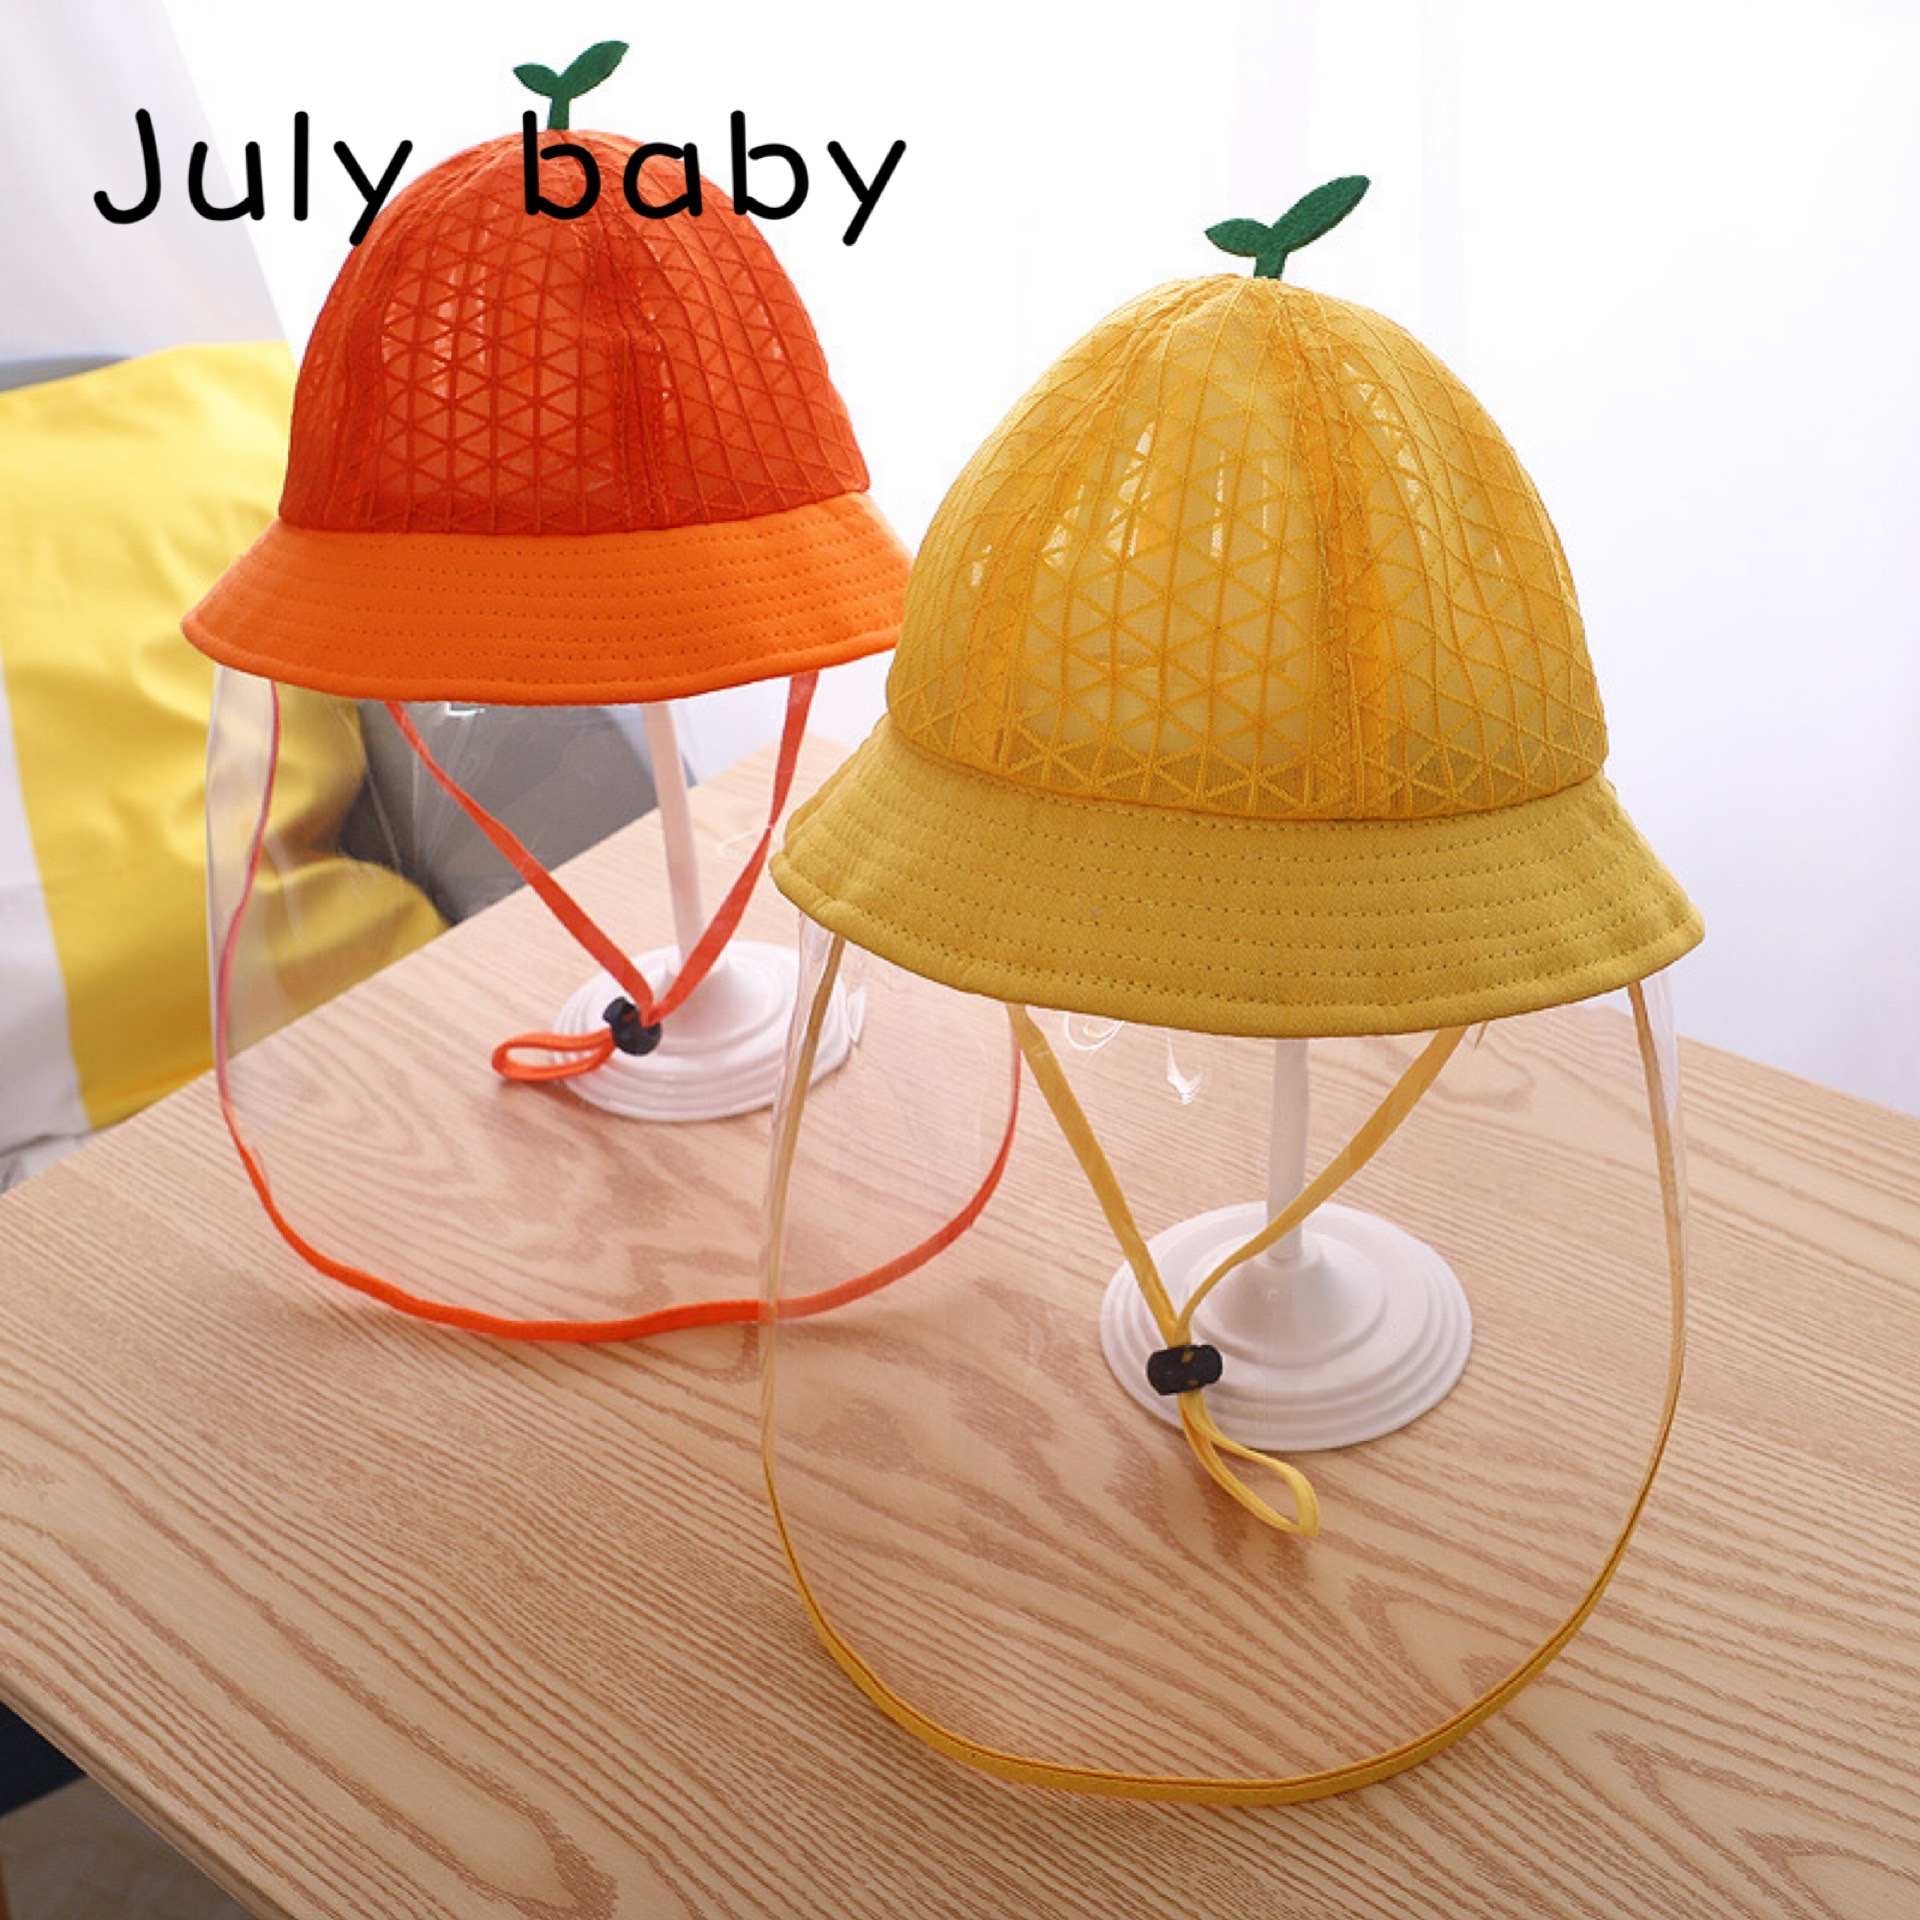 July Baby Splash-proof Removable Children's Protective Cap Boys And Girls Transparent Protective Cover Cute Super Cute Hat